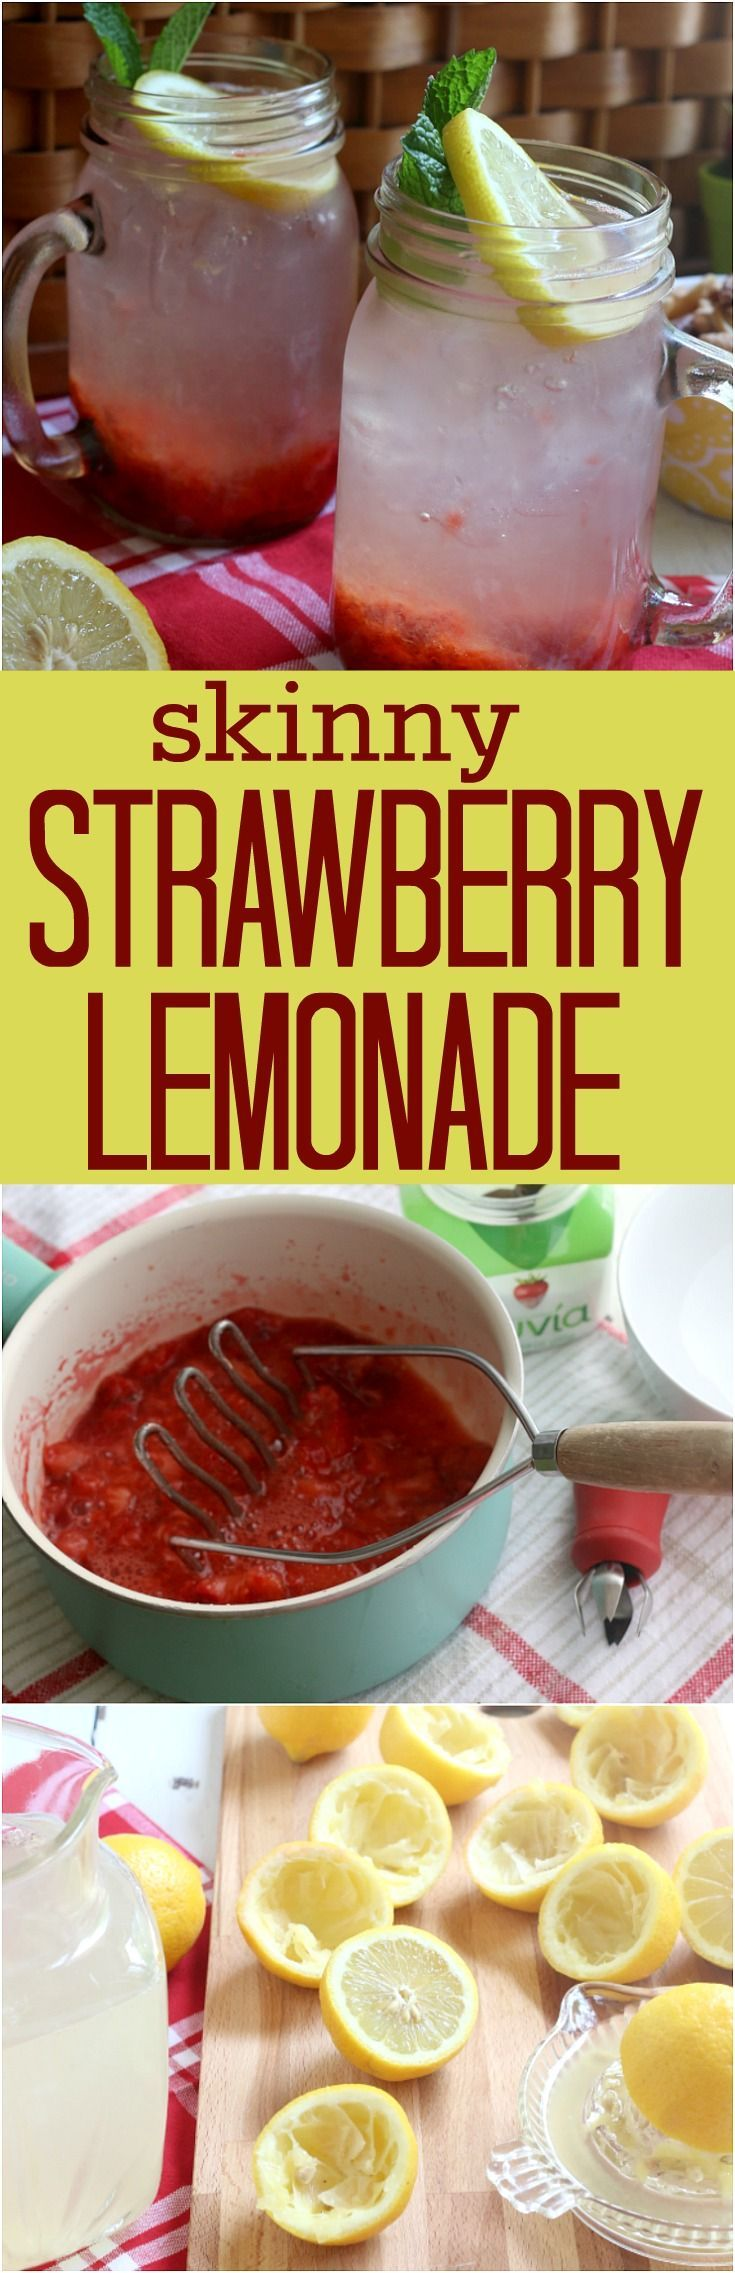 Enjoy this refreshing Strawberry Lemonade without the sugar! Made with fresh strawberries and lemons, it's the perfect Summertime drink! #summerdrink #strawberrylemonade